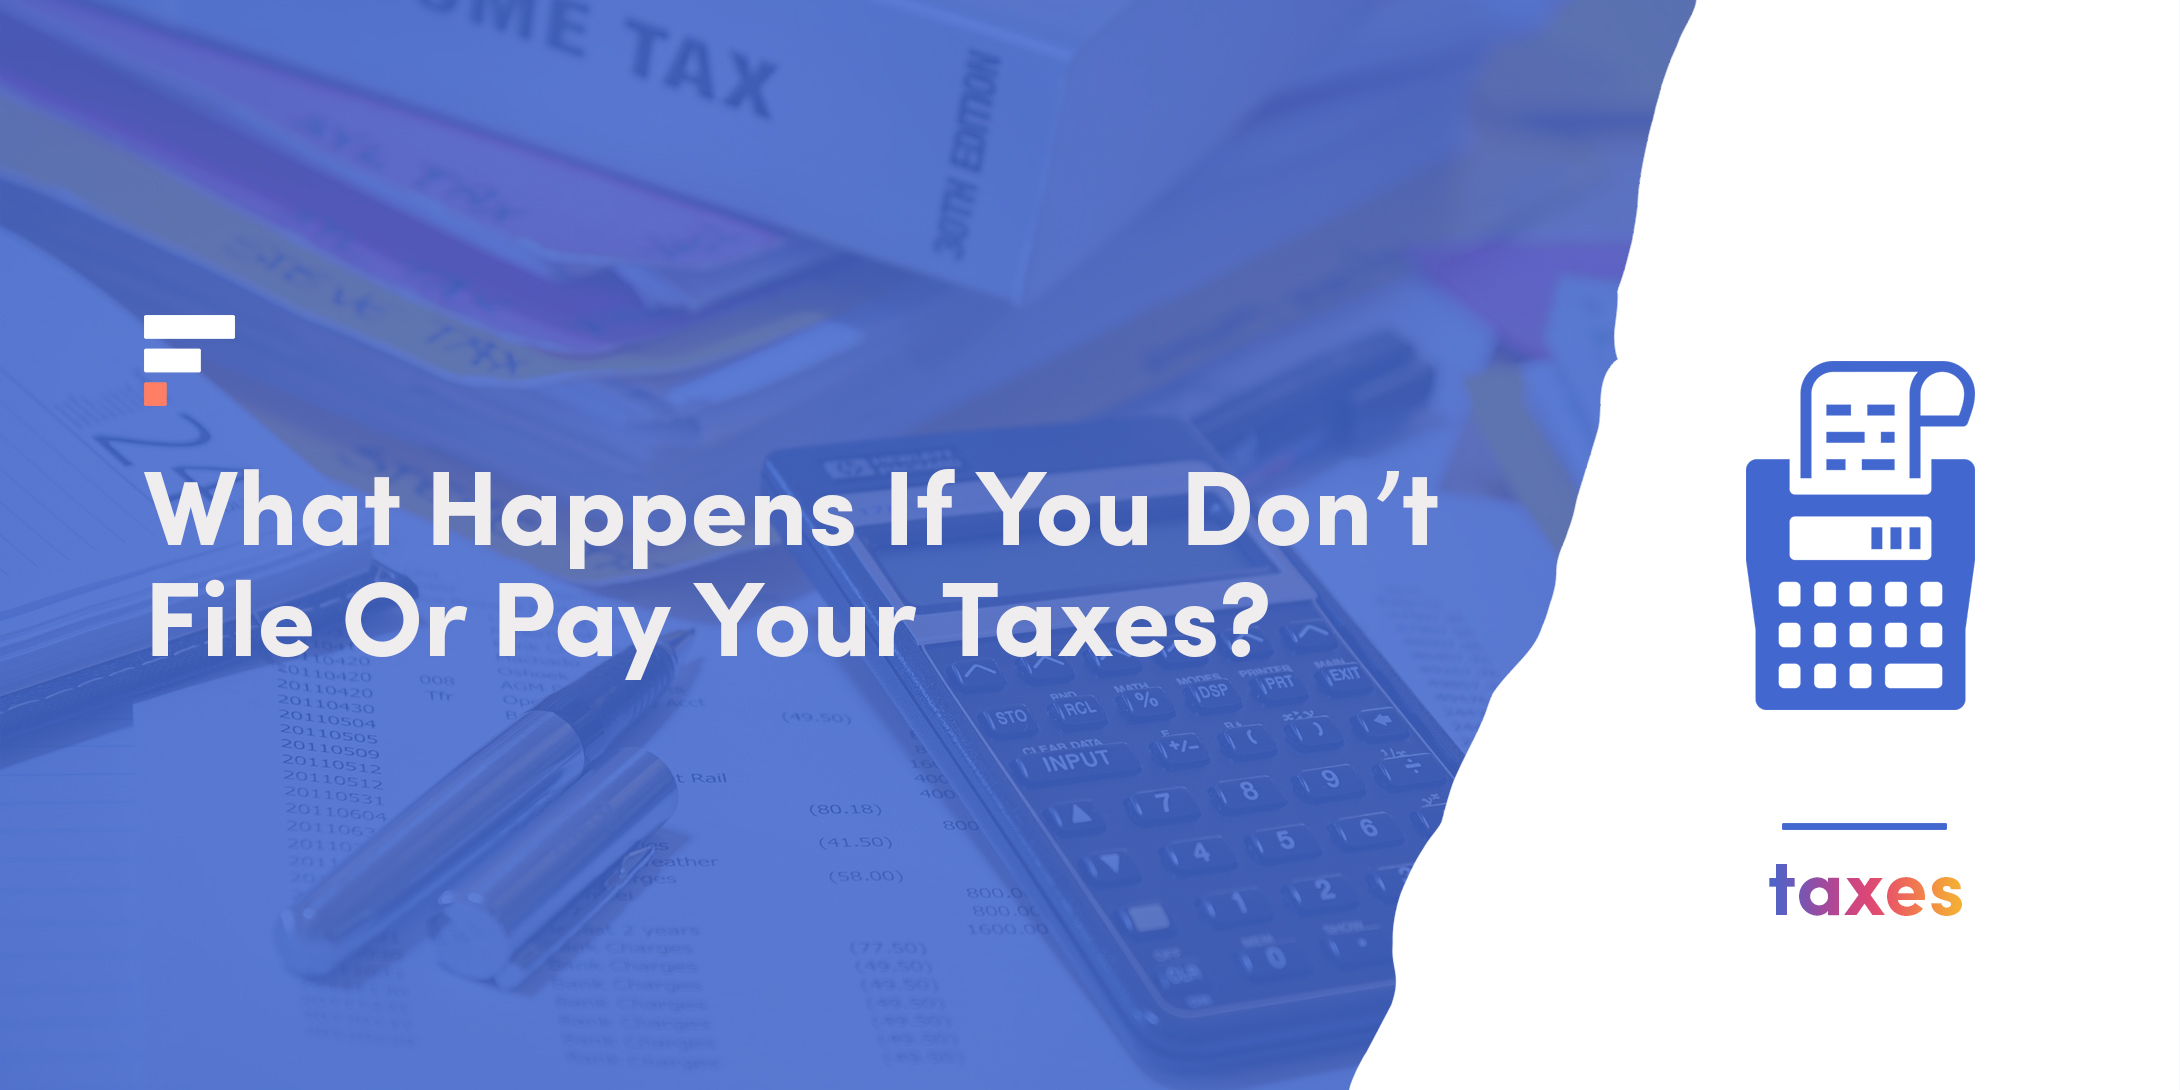 What Happens If You Don't File Or Pay Your Taxes?